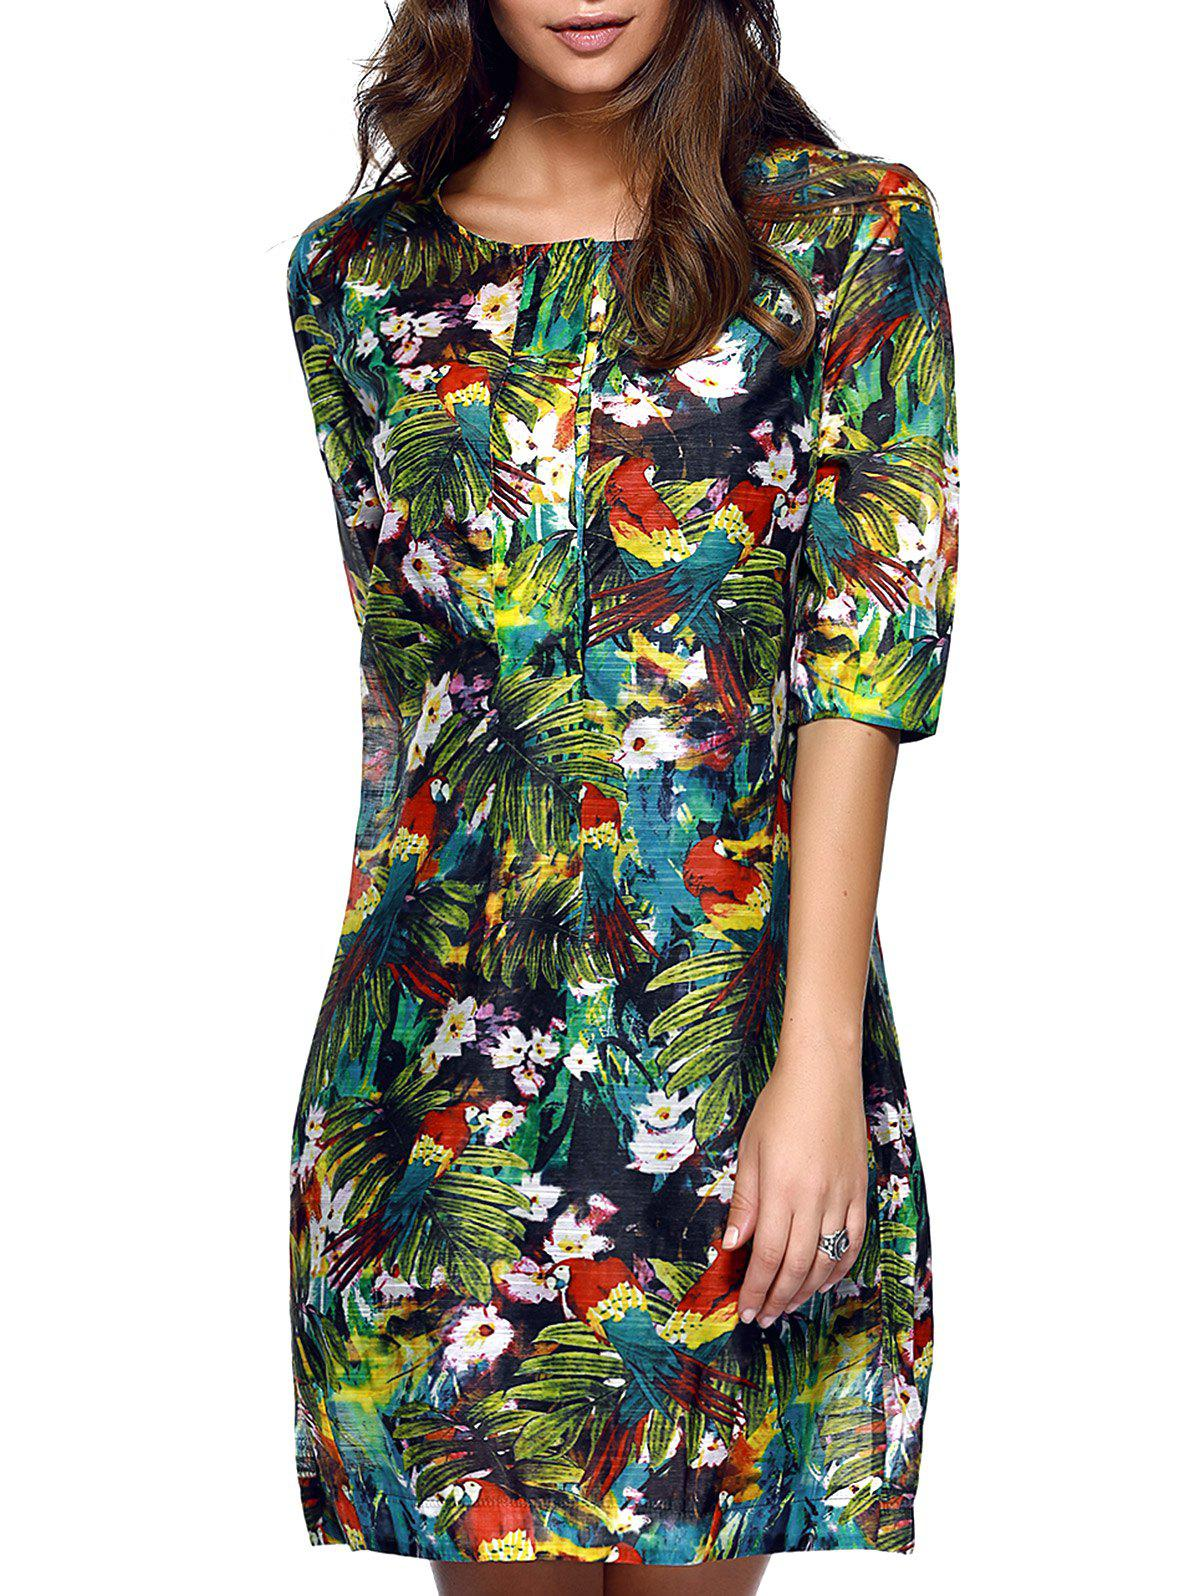 Stylish Women's Half Sleeves Tropical Print Loose Dress - GREEN 2XL